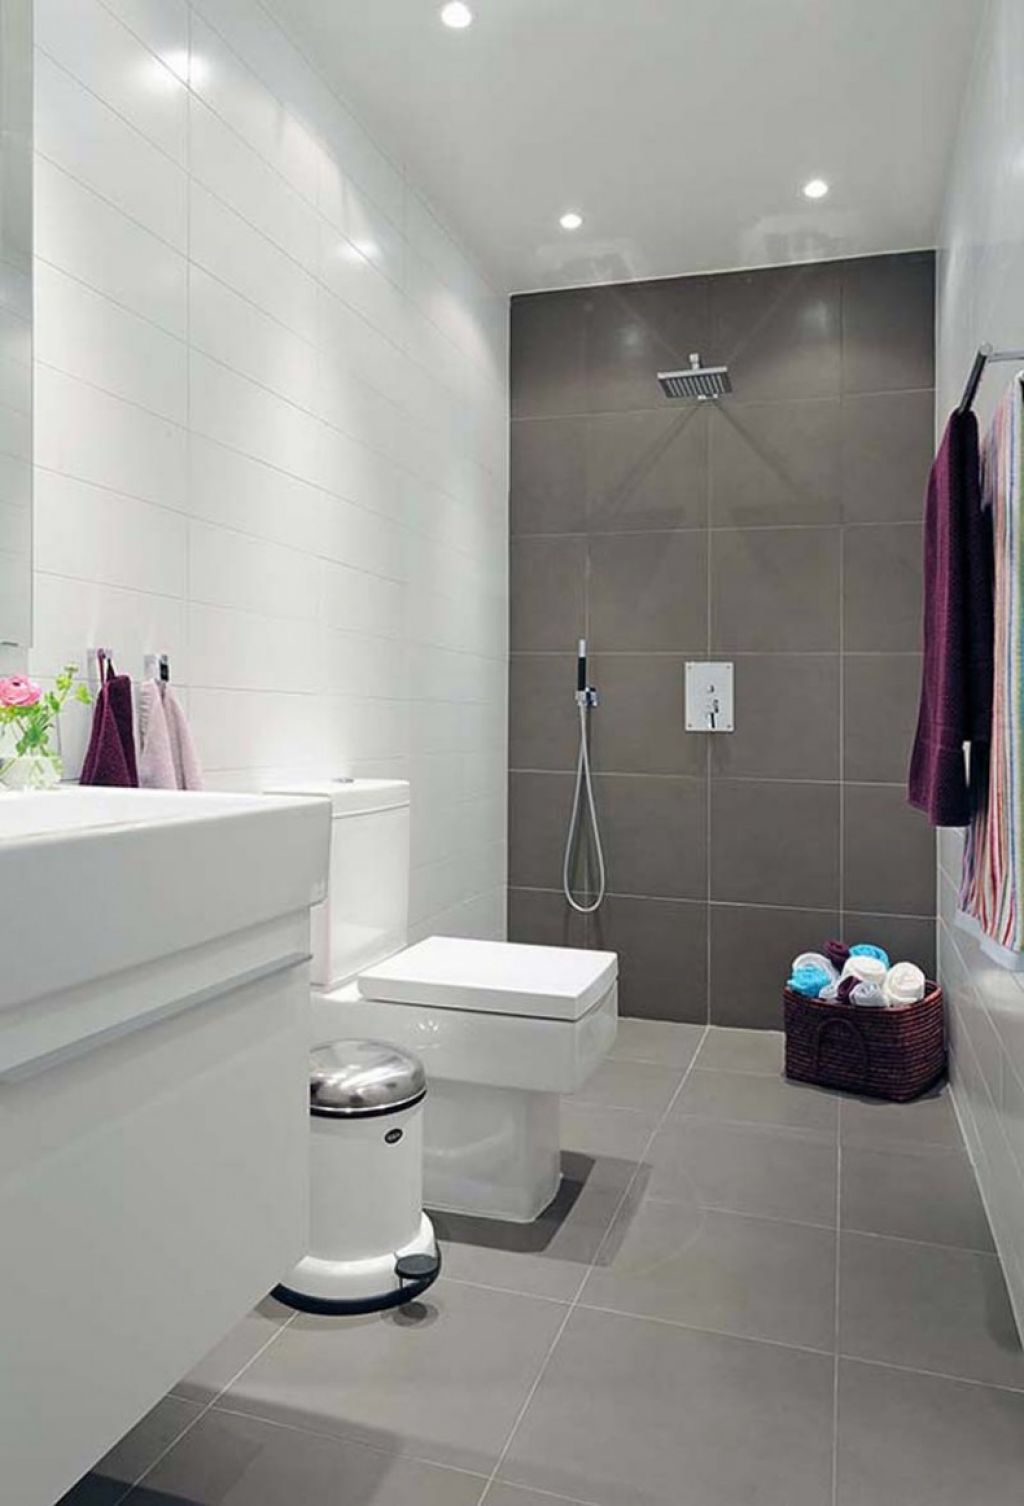 White Horizonal Tiles With Large Dark Brown Square Tiles Optional Lighter Brown Floor Small Bathroom Tiles Bathroom Design Small Modern Small Bathrooms